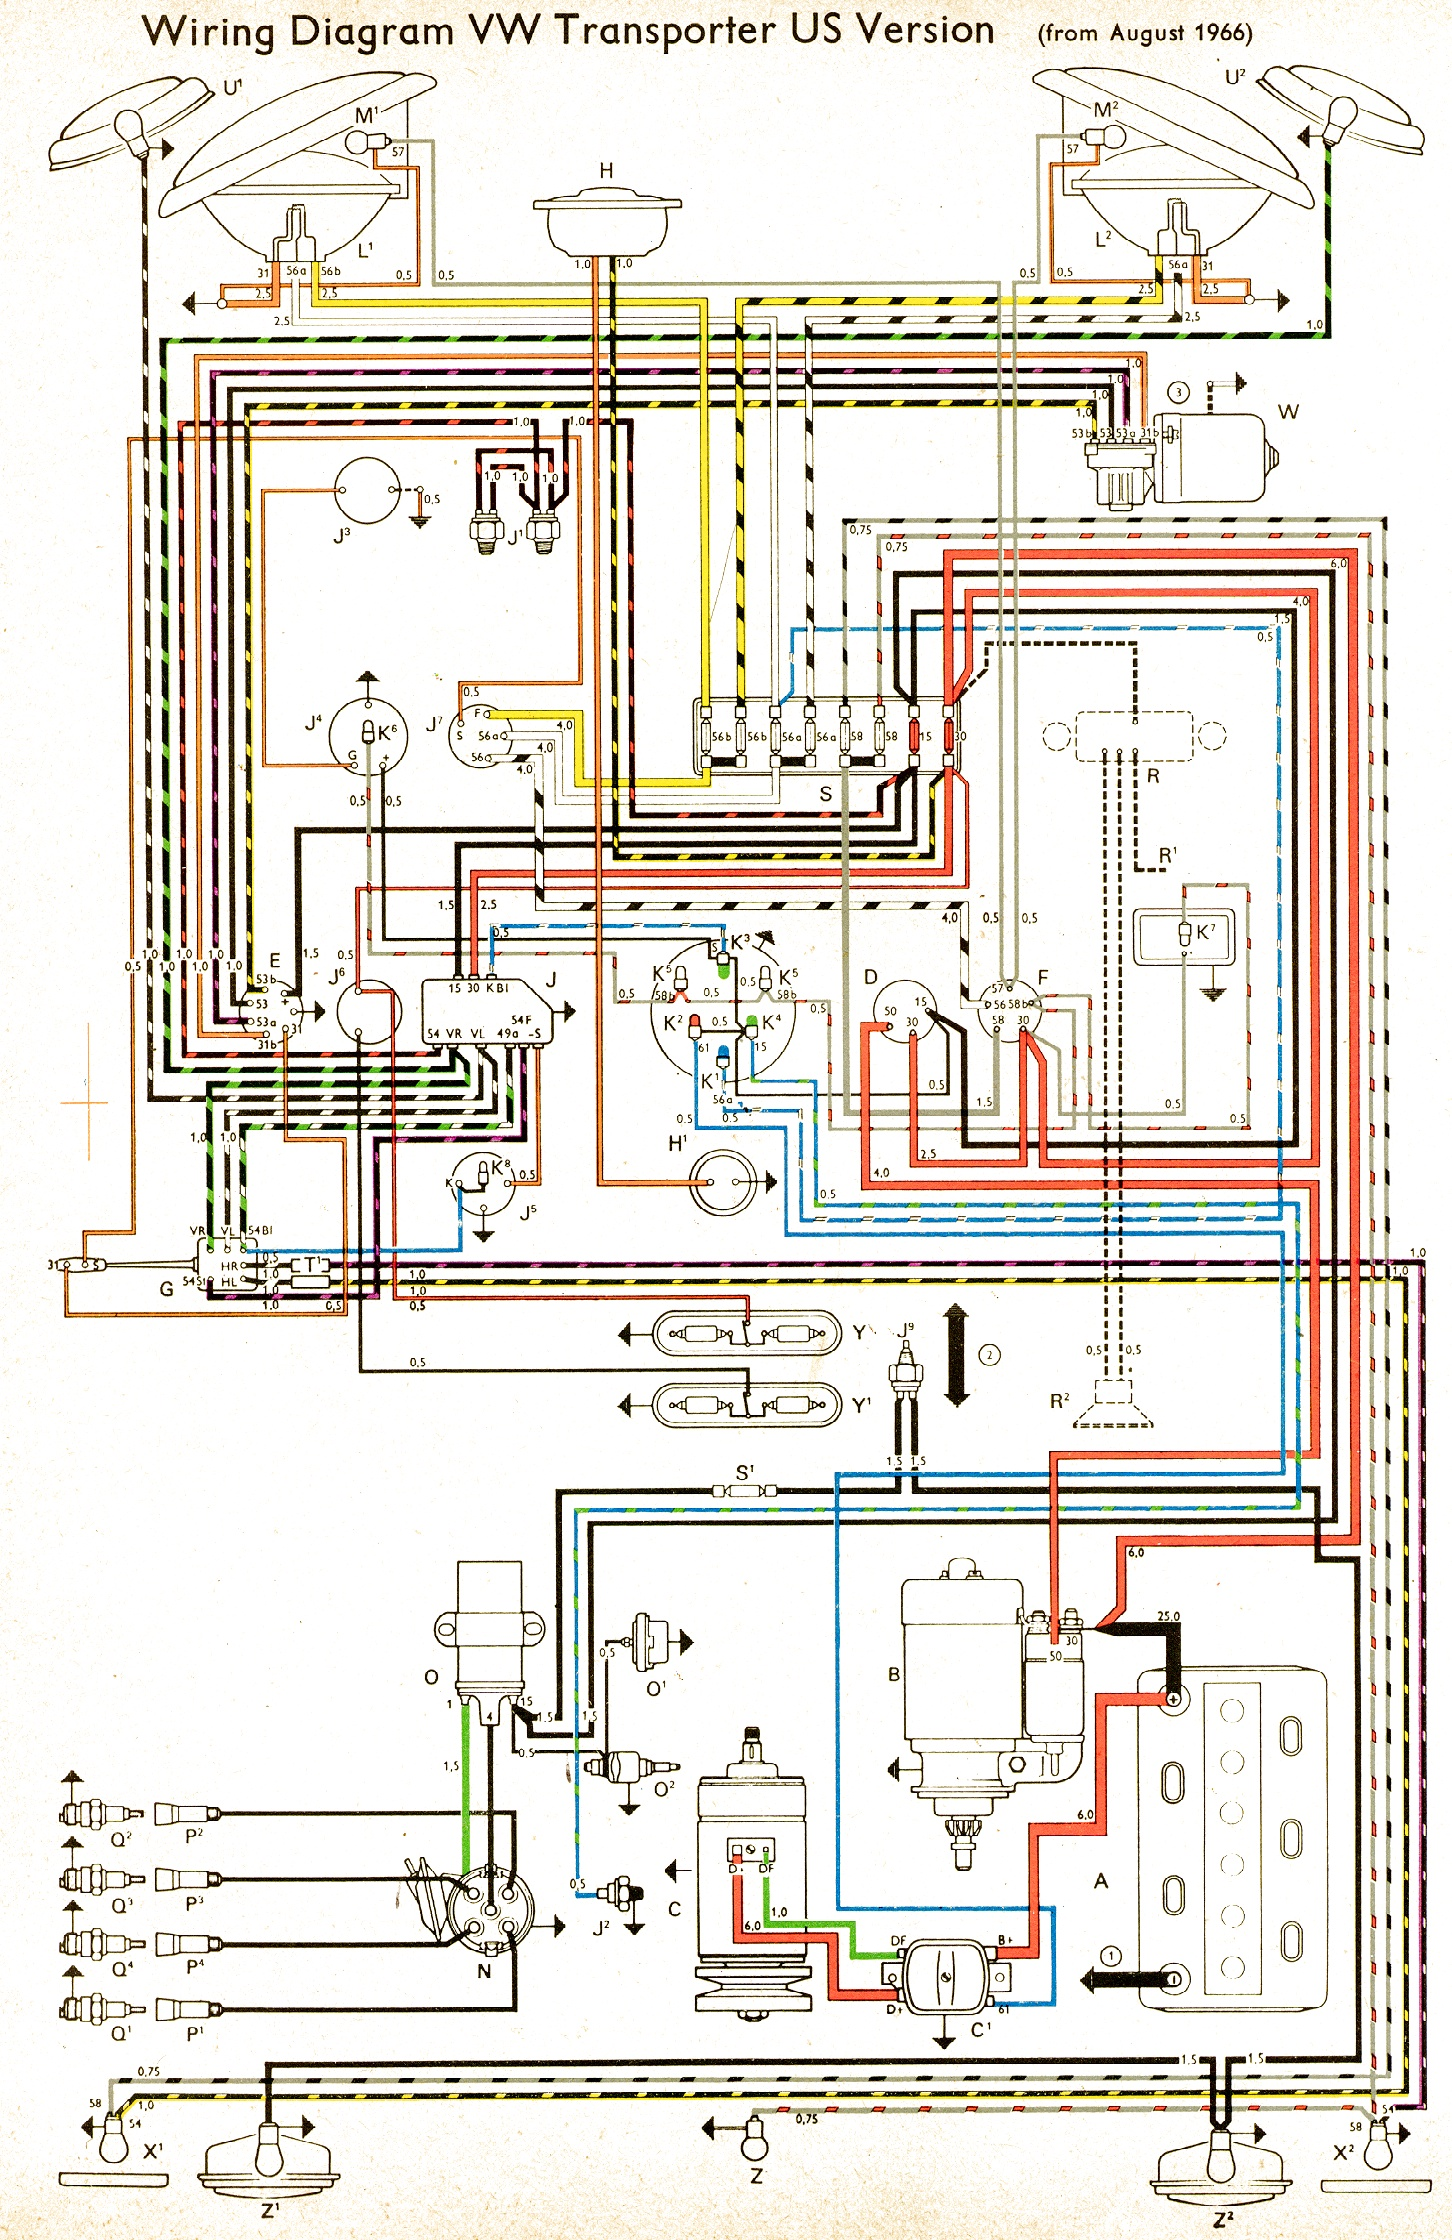 hight resolution of 66 vw wiring diagram 1300 wiring diagram third level 66 cadillac wiring diagram 66 vw wiring diagram